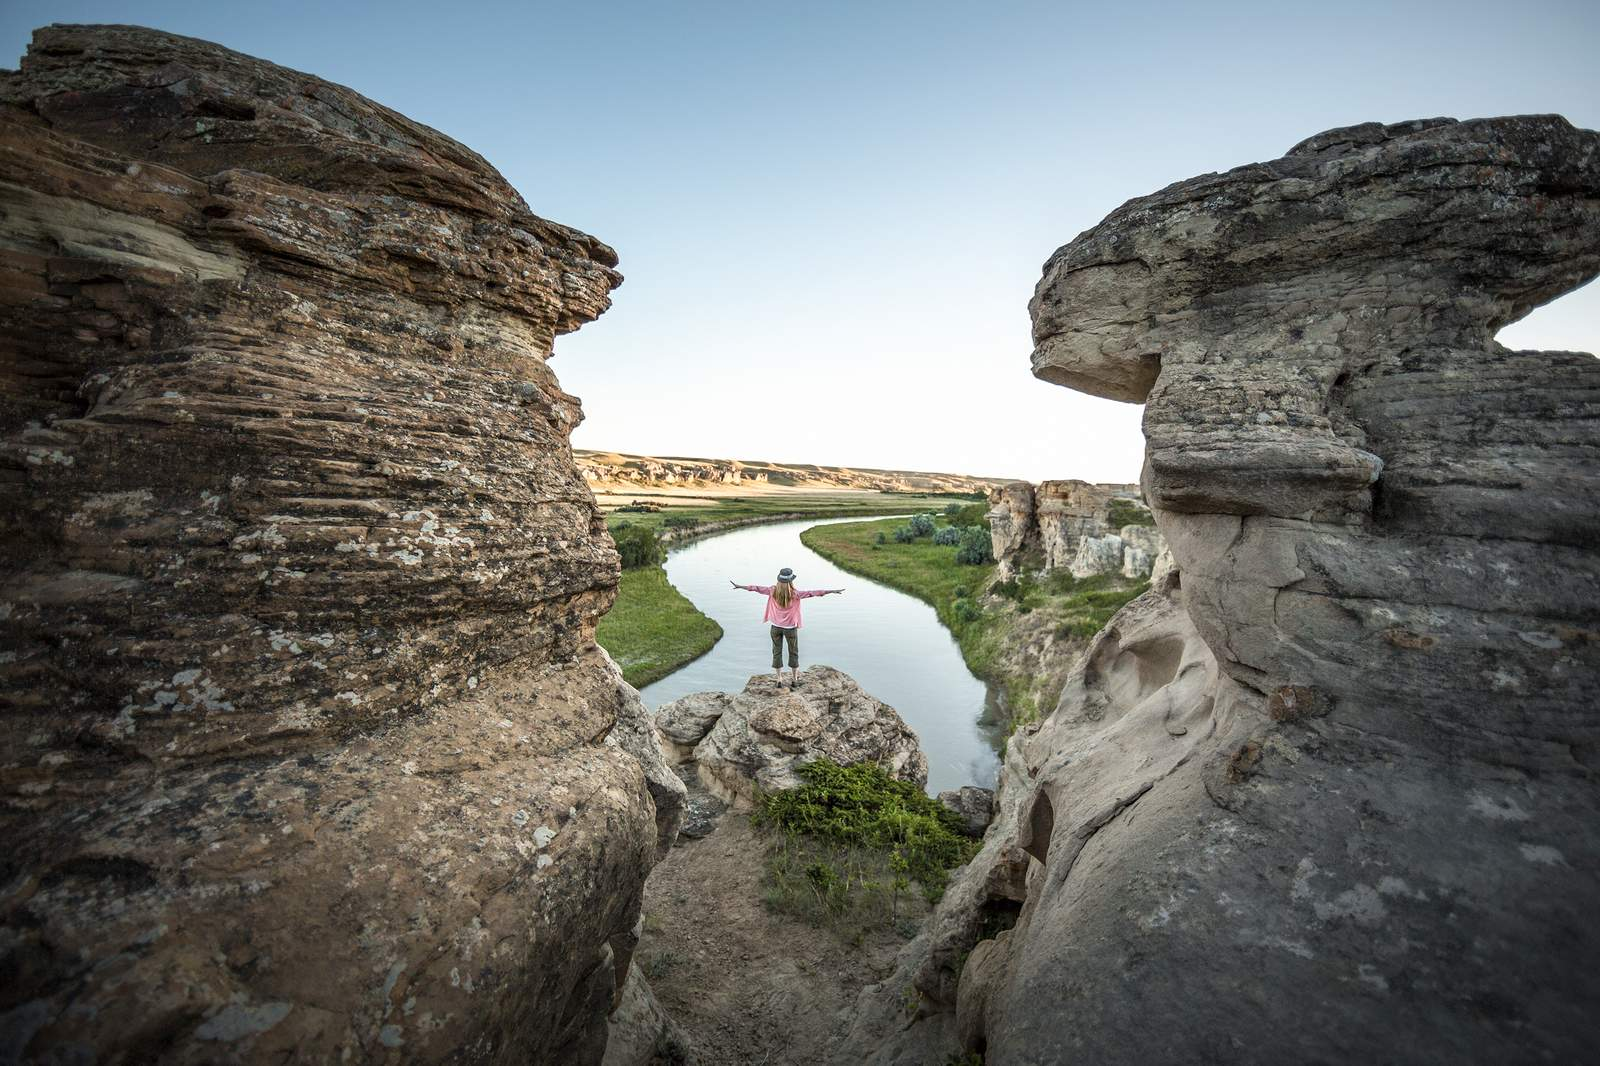 Wirting-on-Stone Provincial Park